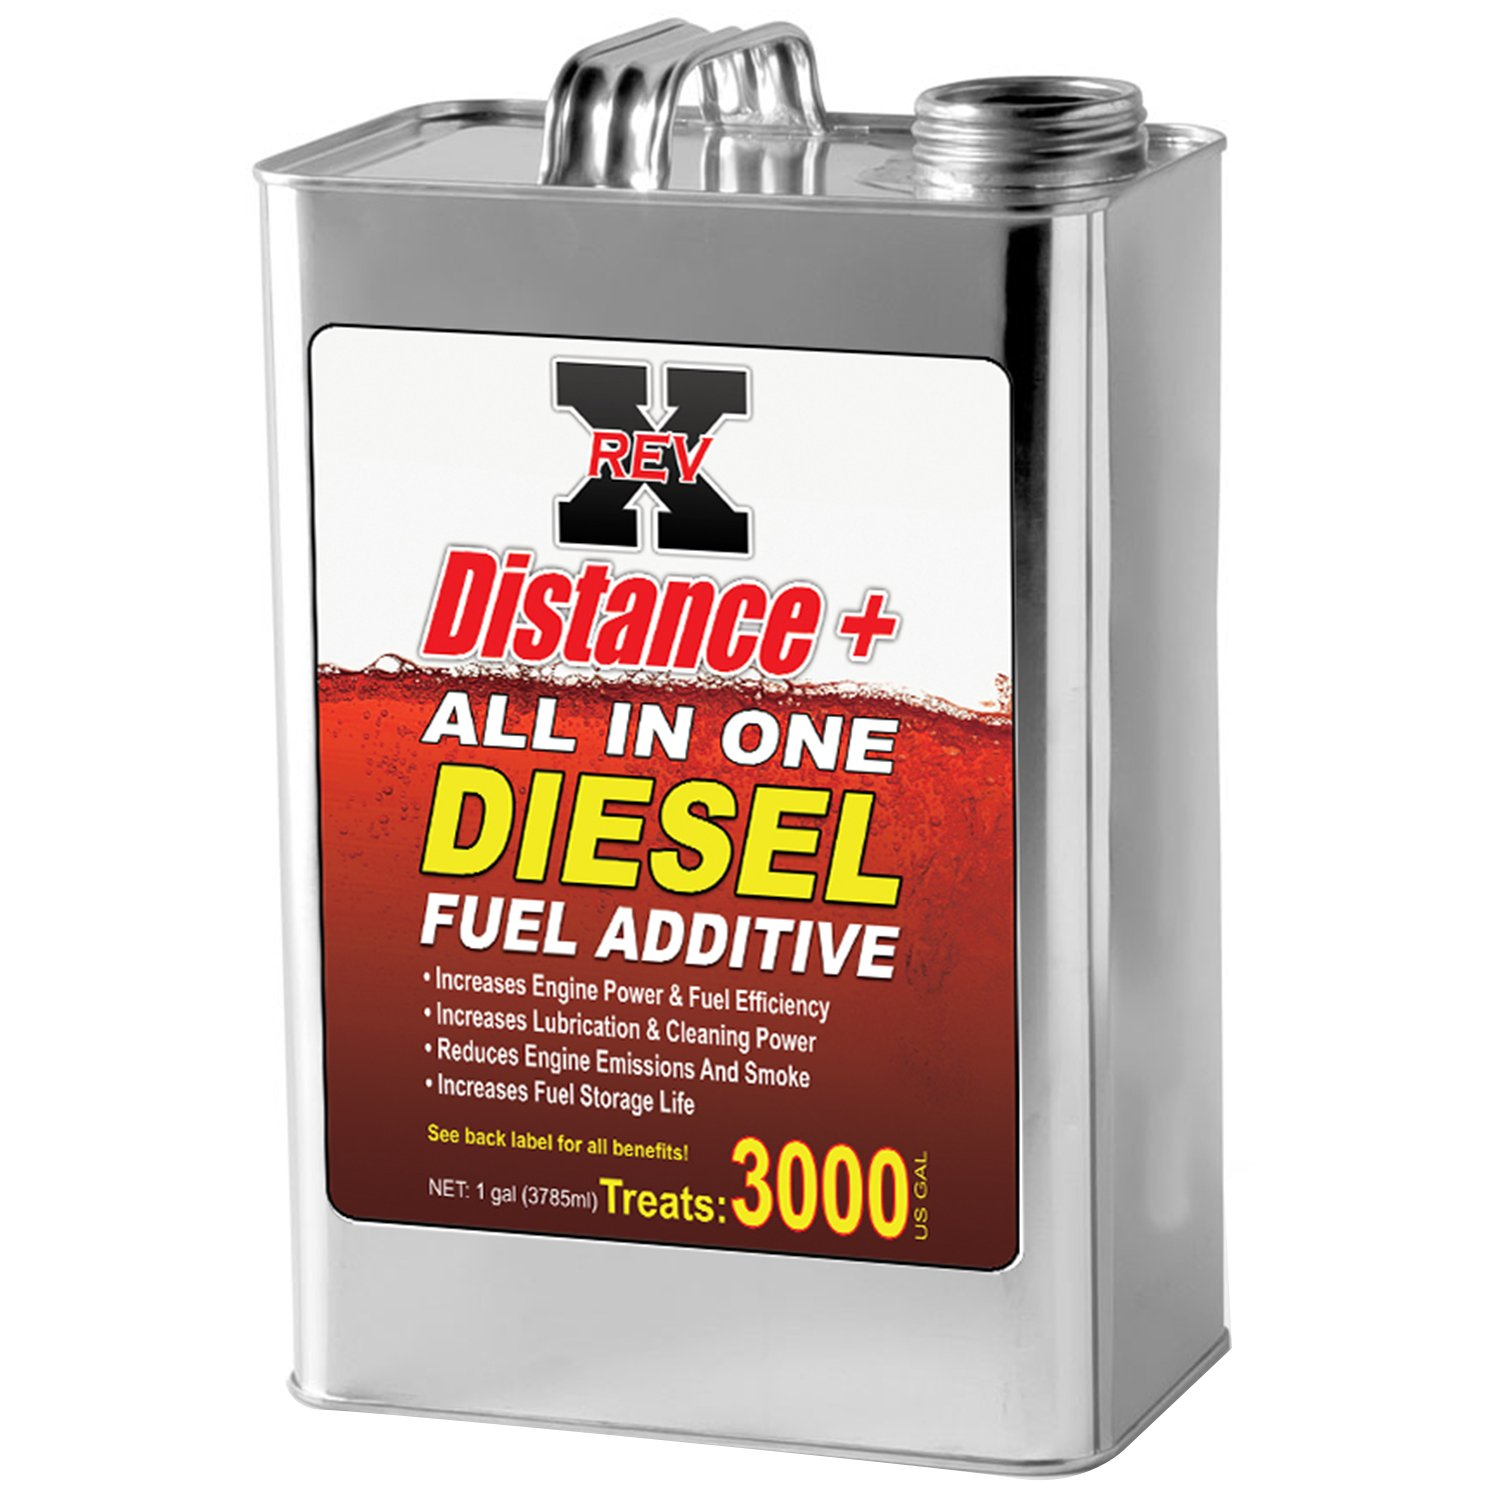 REV X Distance + Diesel Fuel Additive - 1 Gallon Treats 3000 Gallons by REV-X